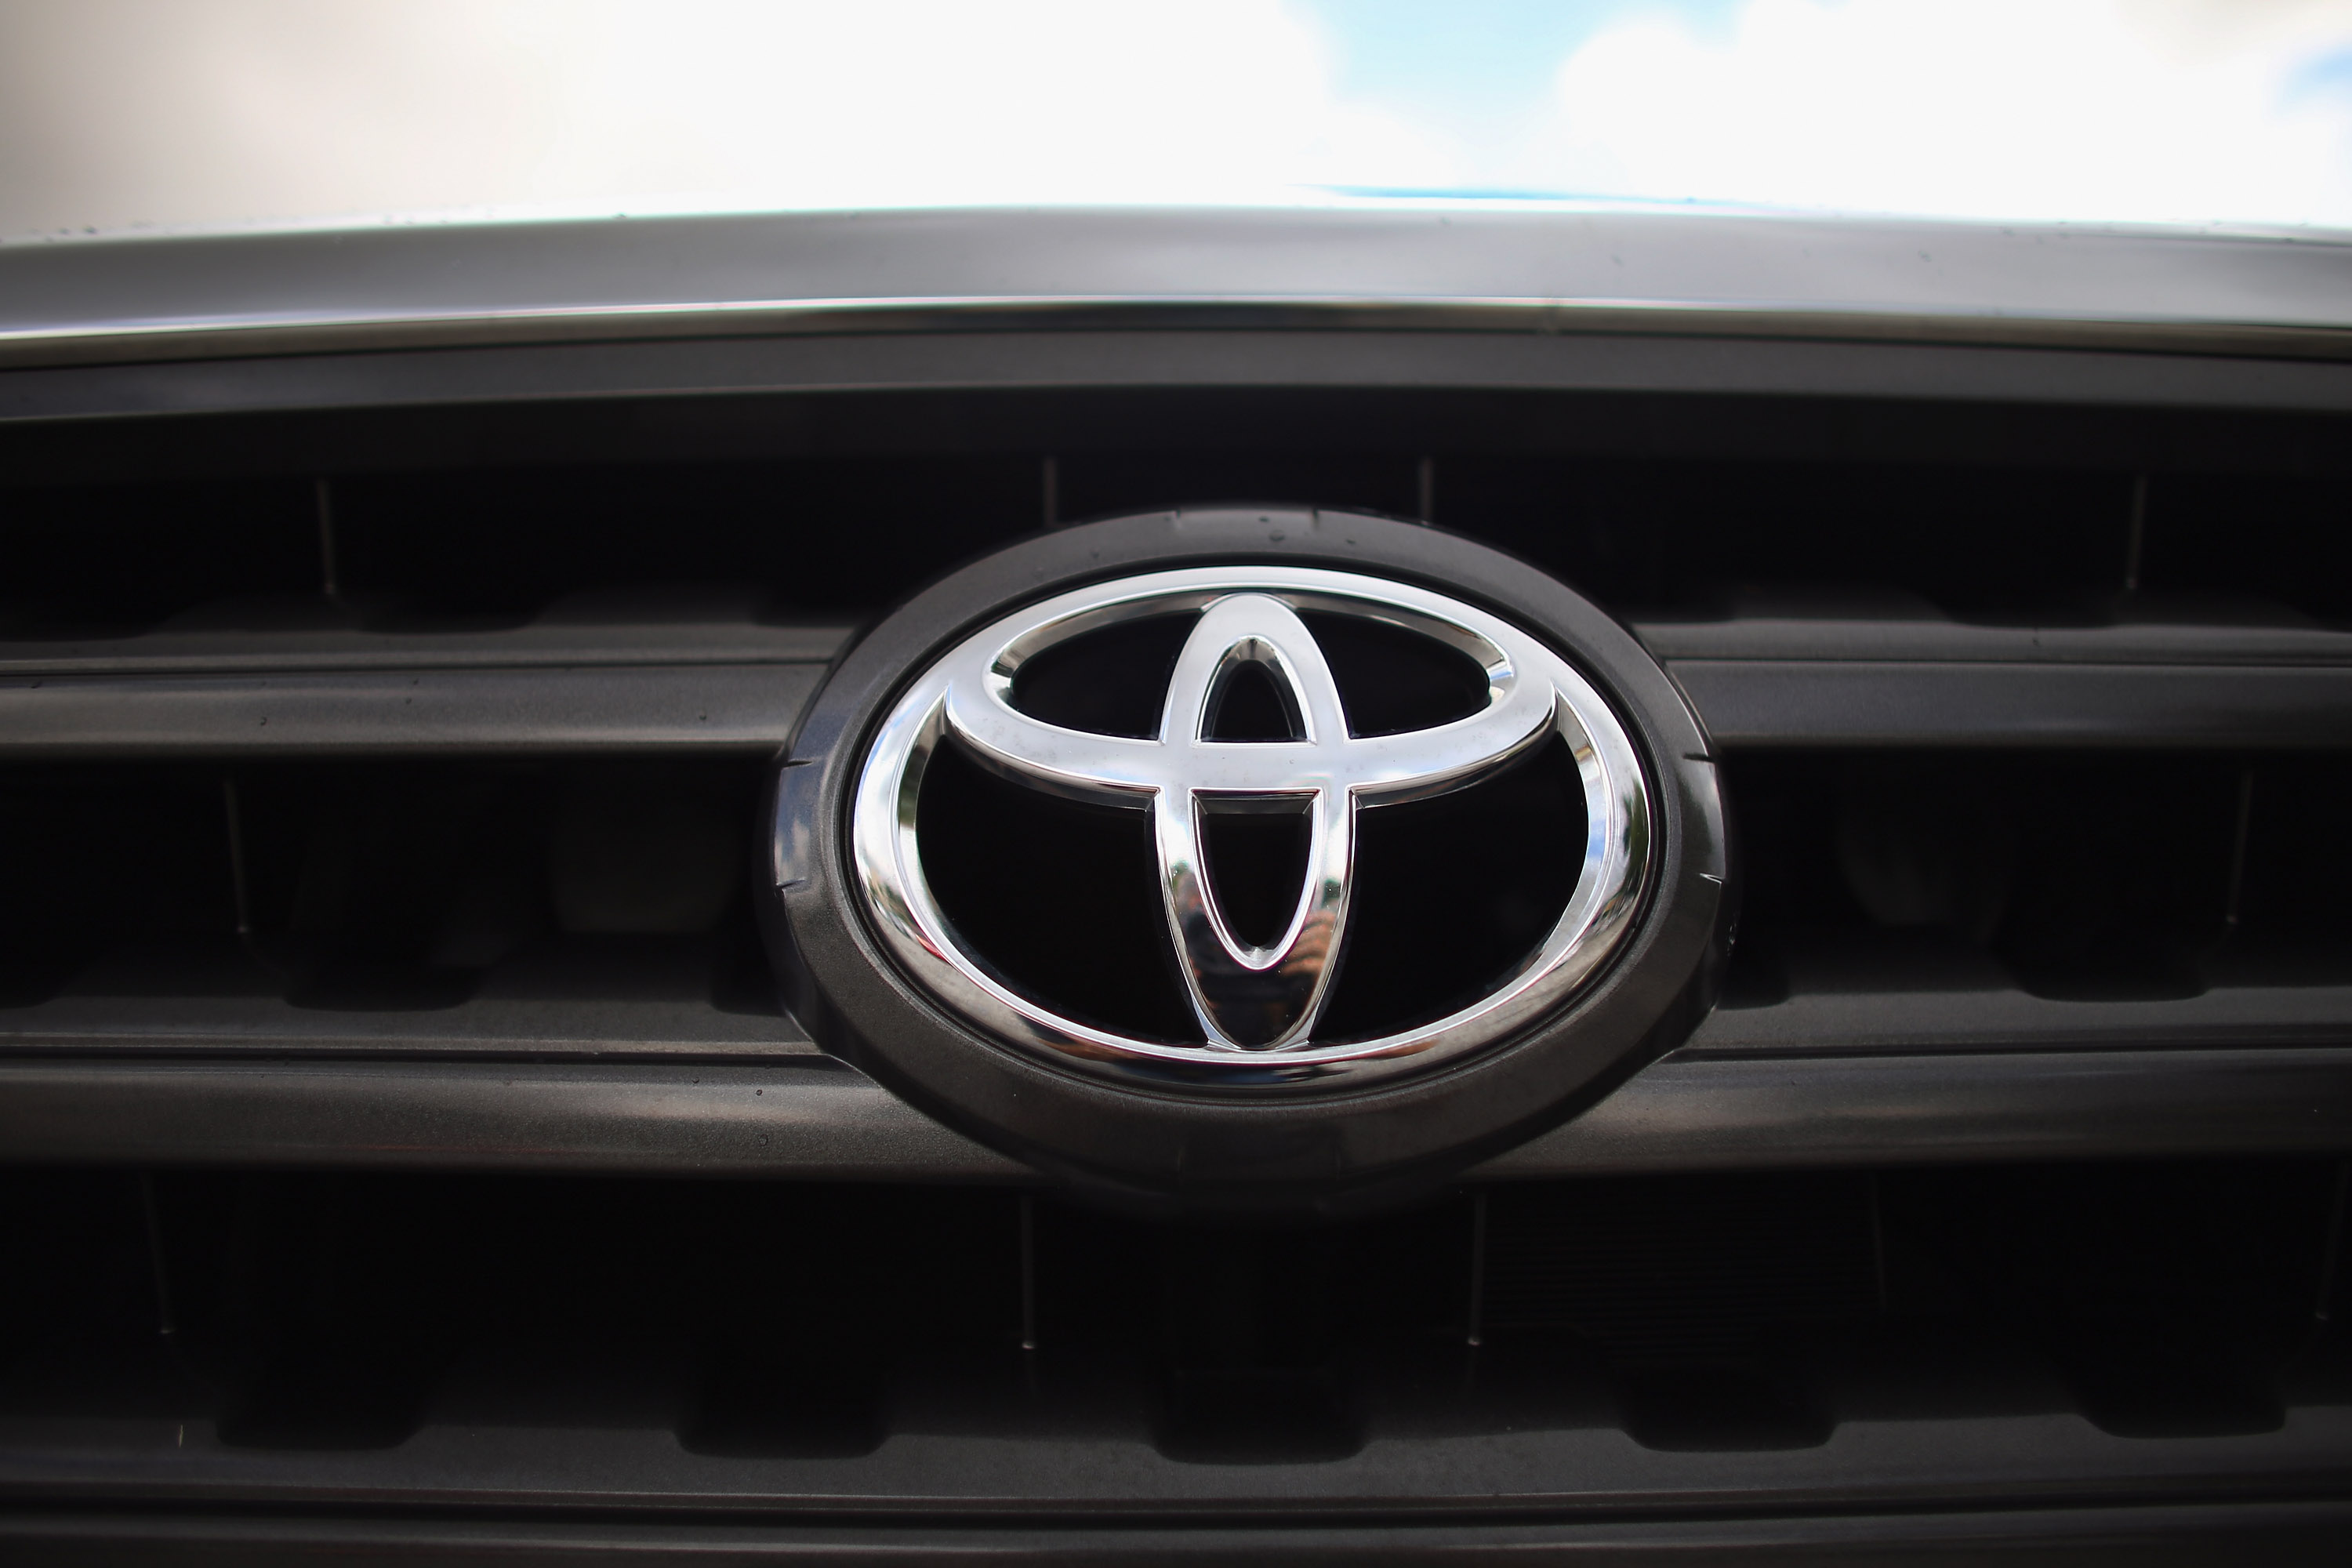 Toyota To Issue Worldwide Recall On Over 7 Million Cars Over Fire Risk